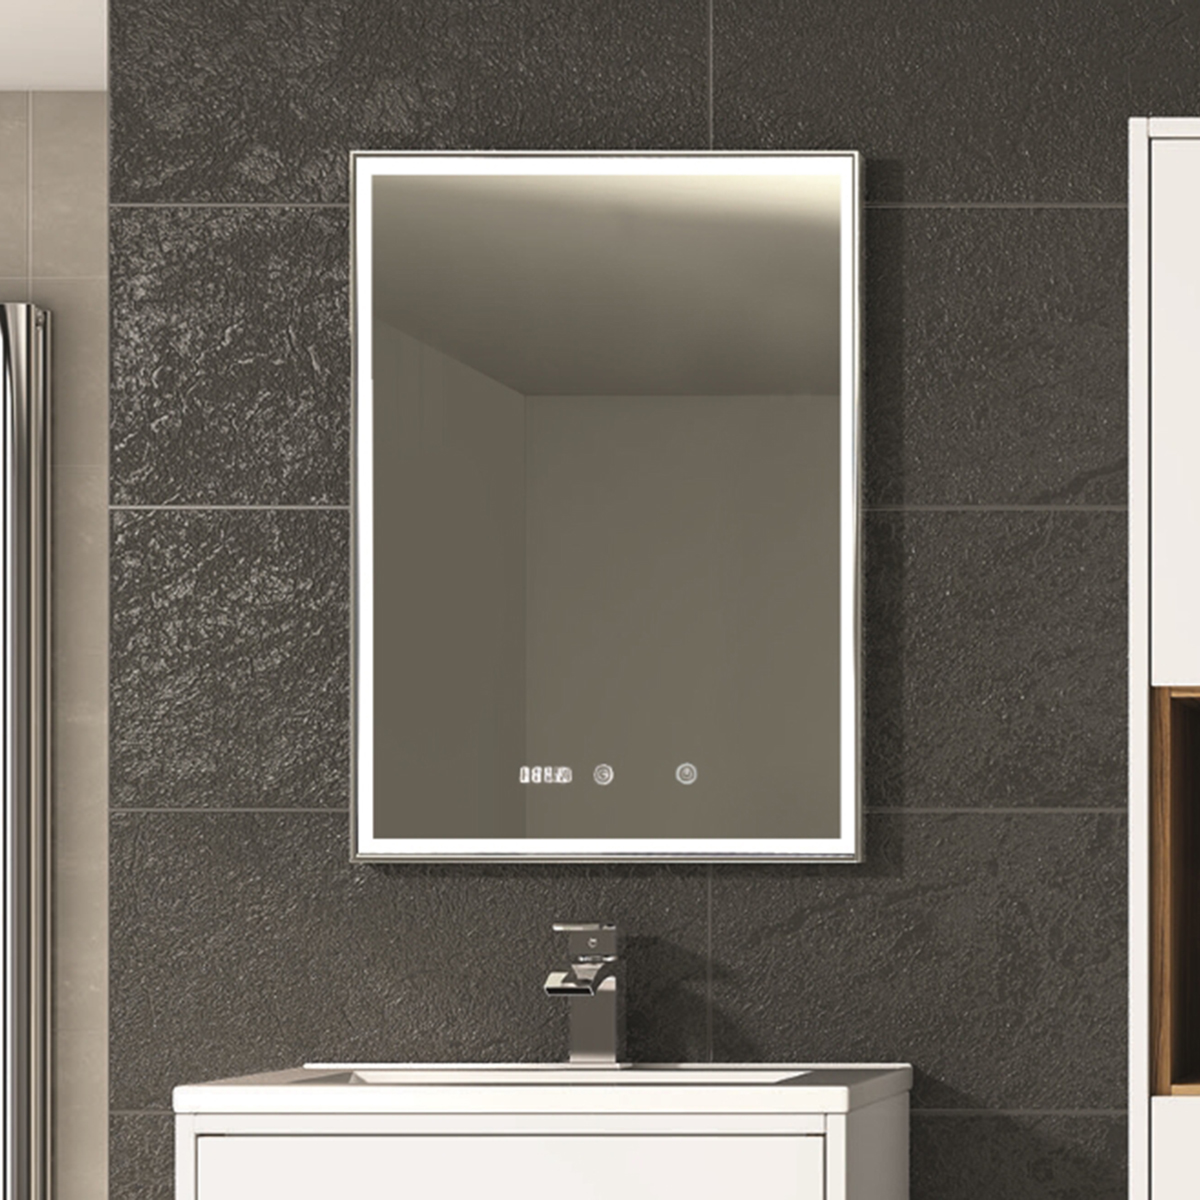 Here is Story of Bathroom Mirrors from Selection to Maintenance